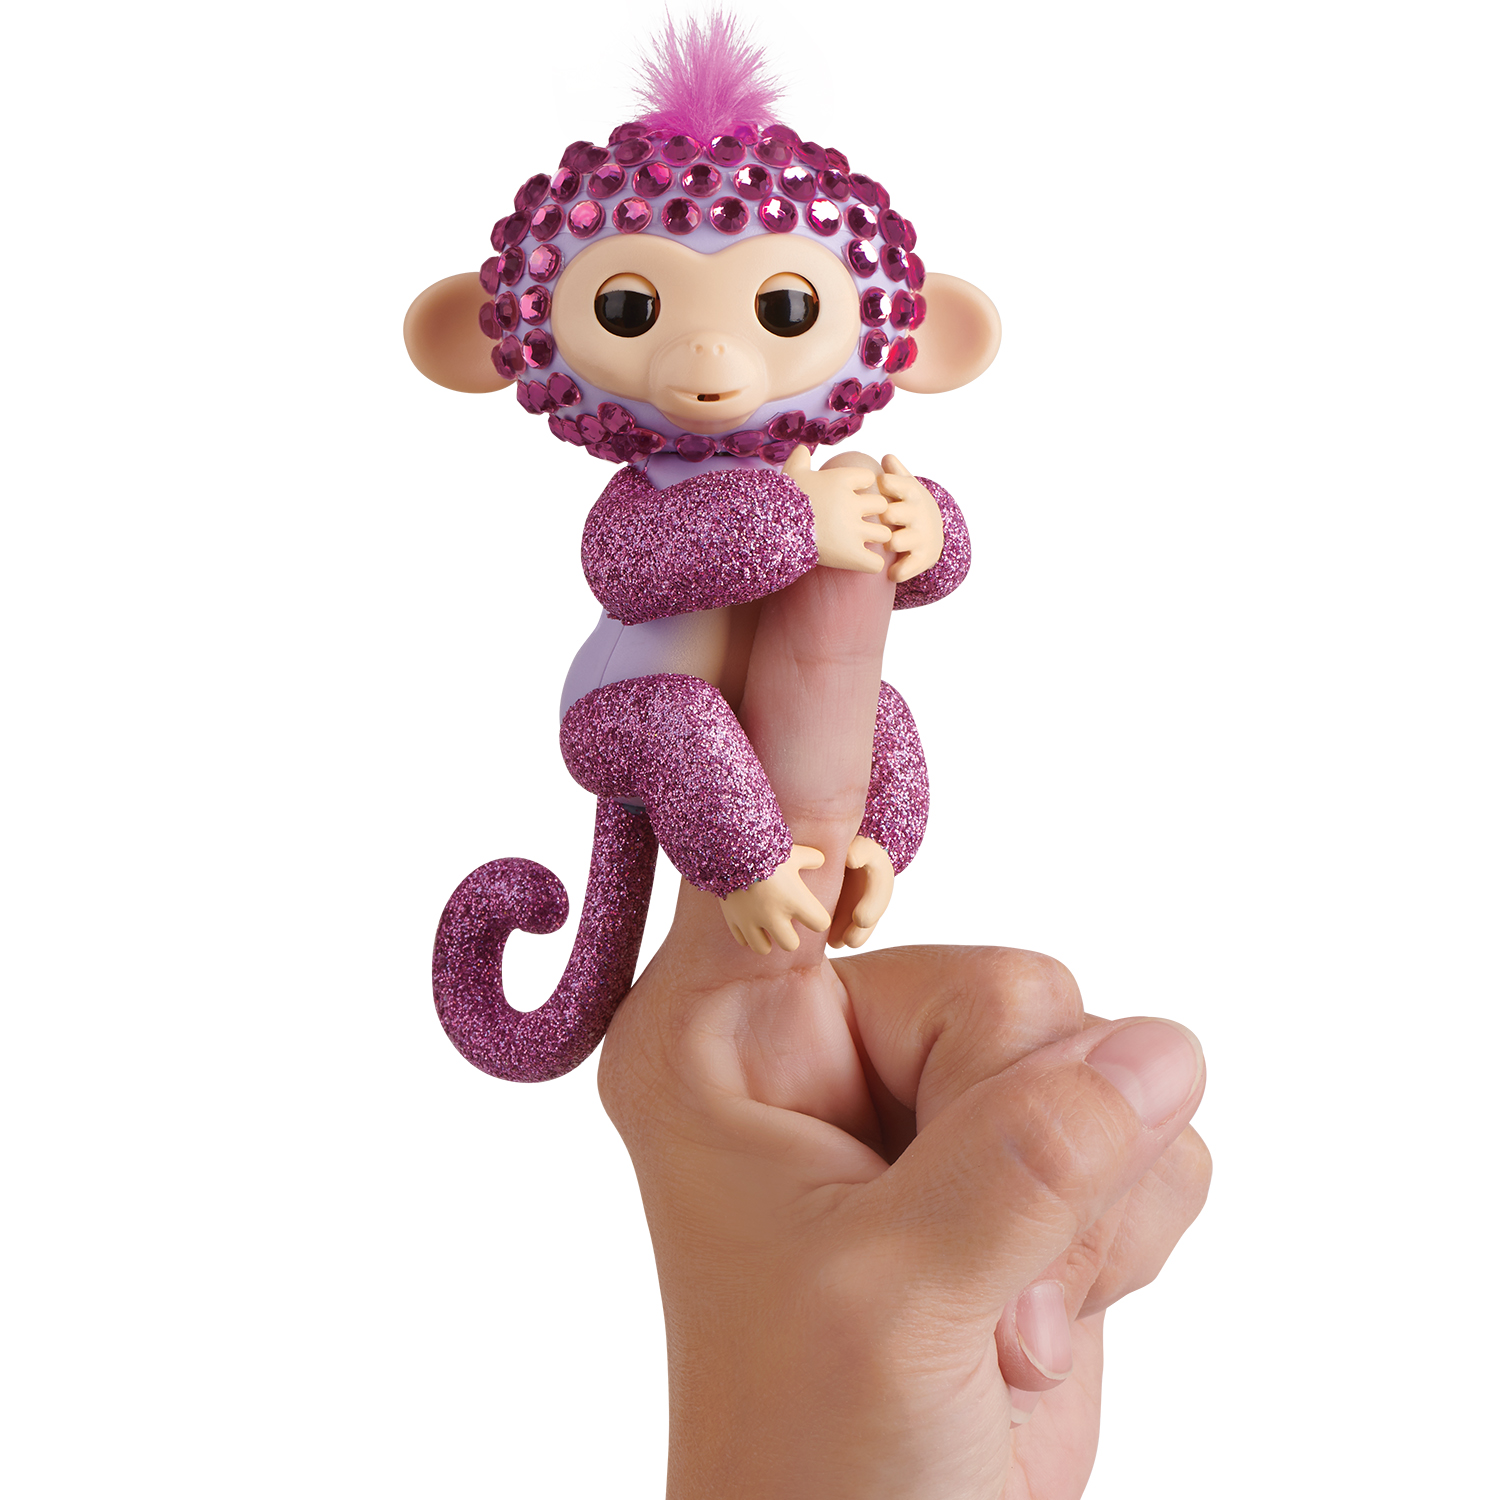 Fingerlings Monkeys - Fingerblings - Glitz (Purple/Pink) - By WowWee